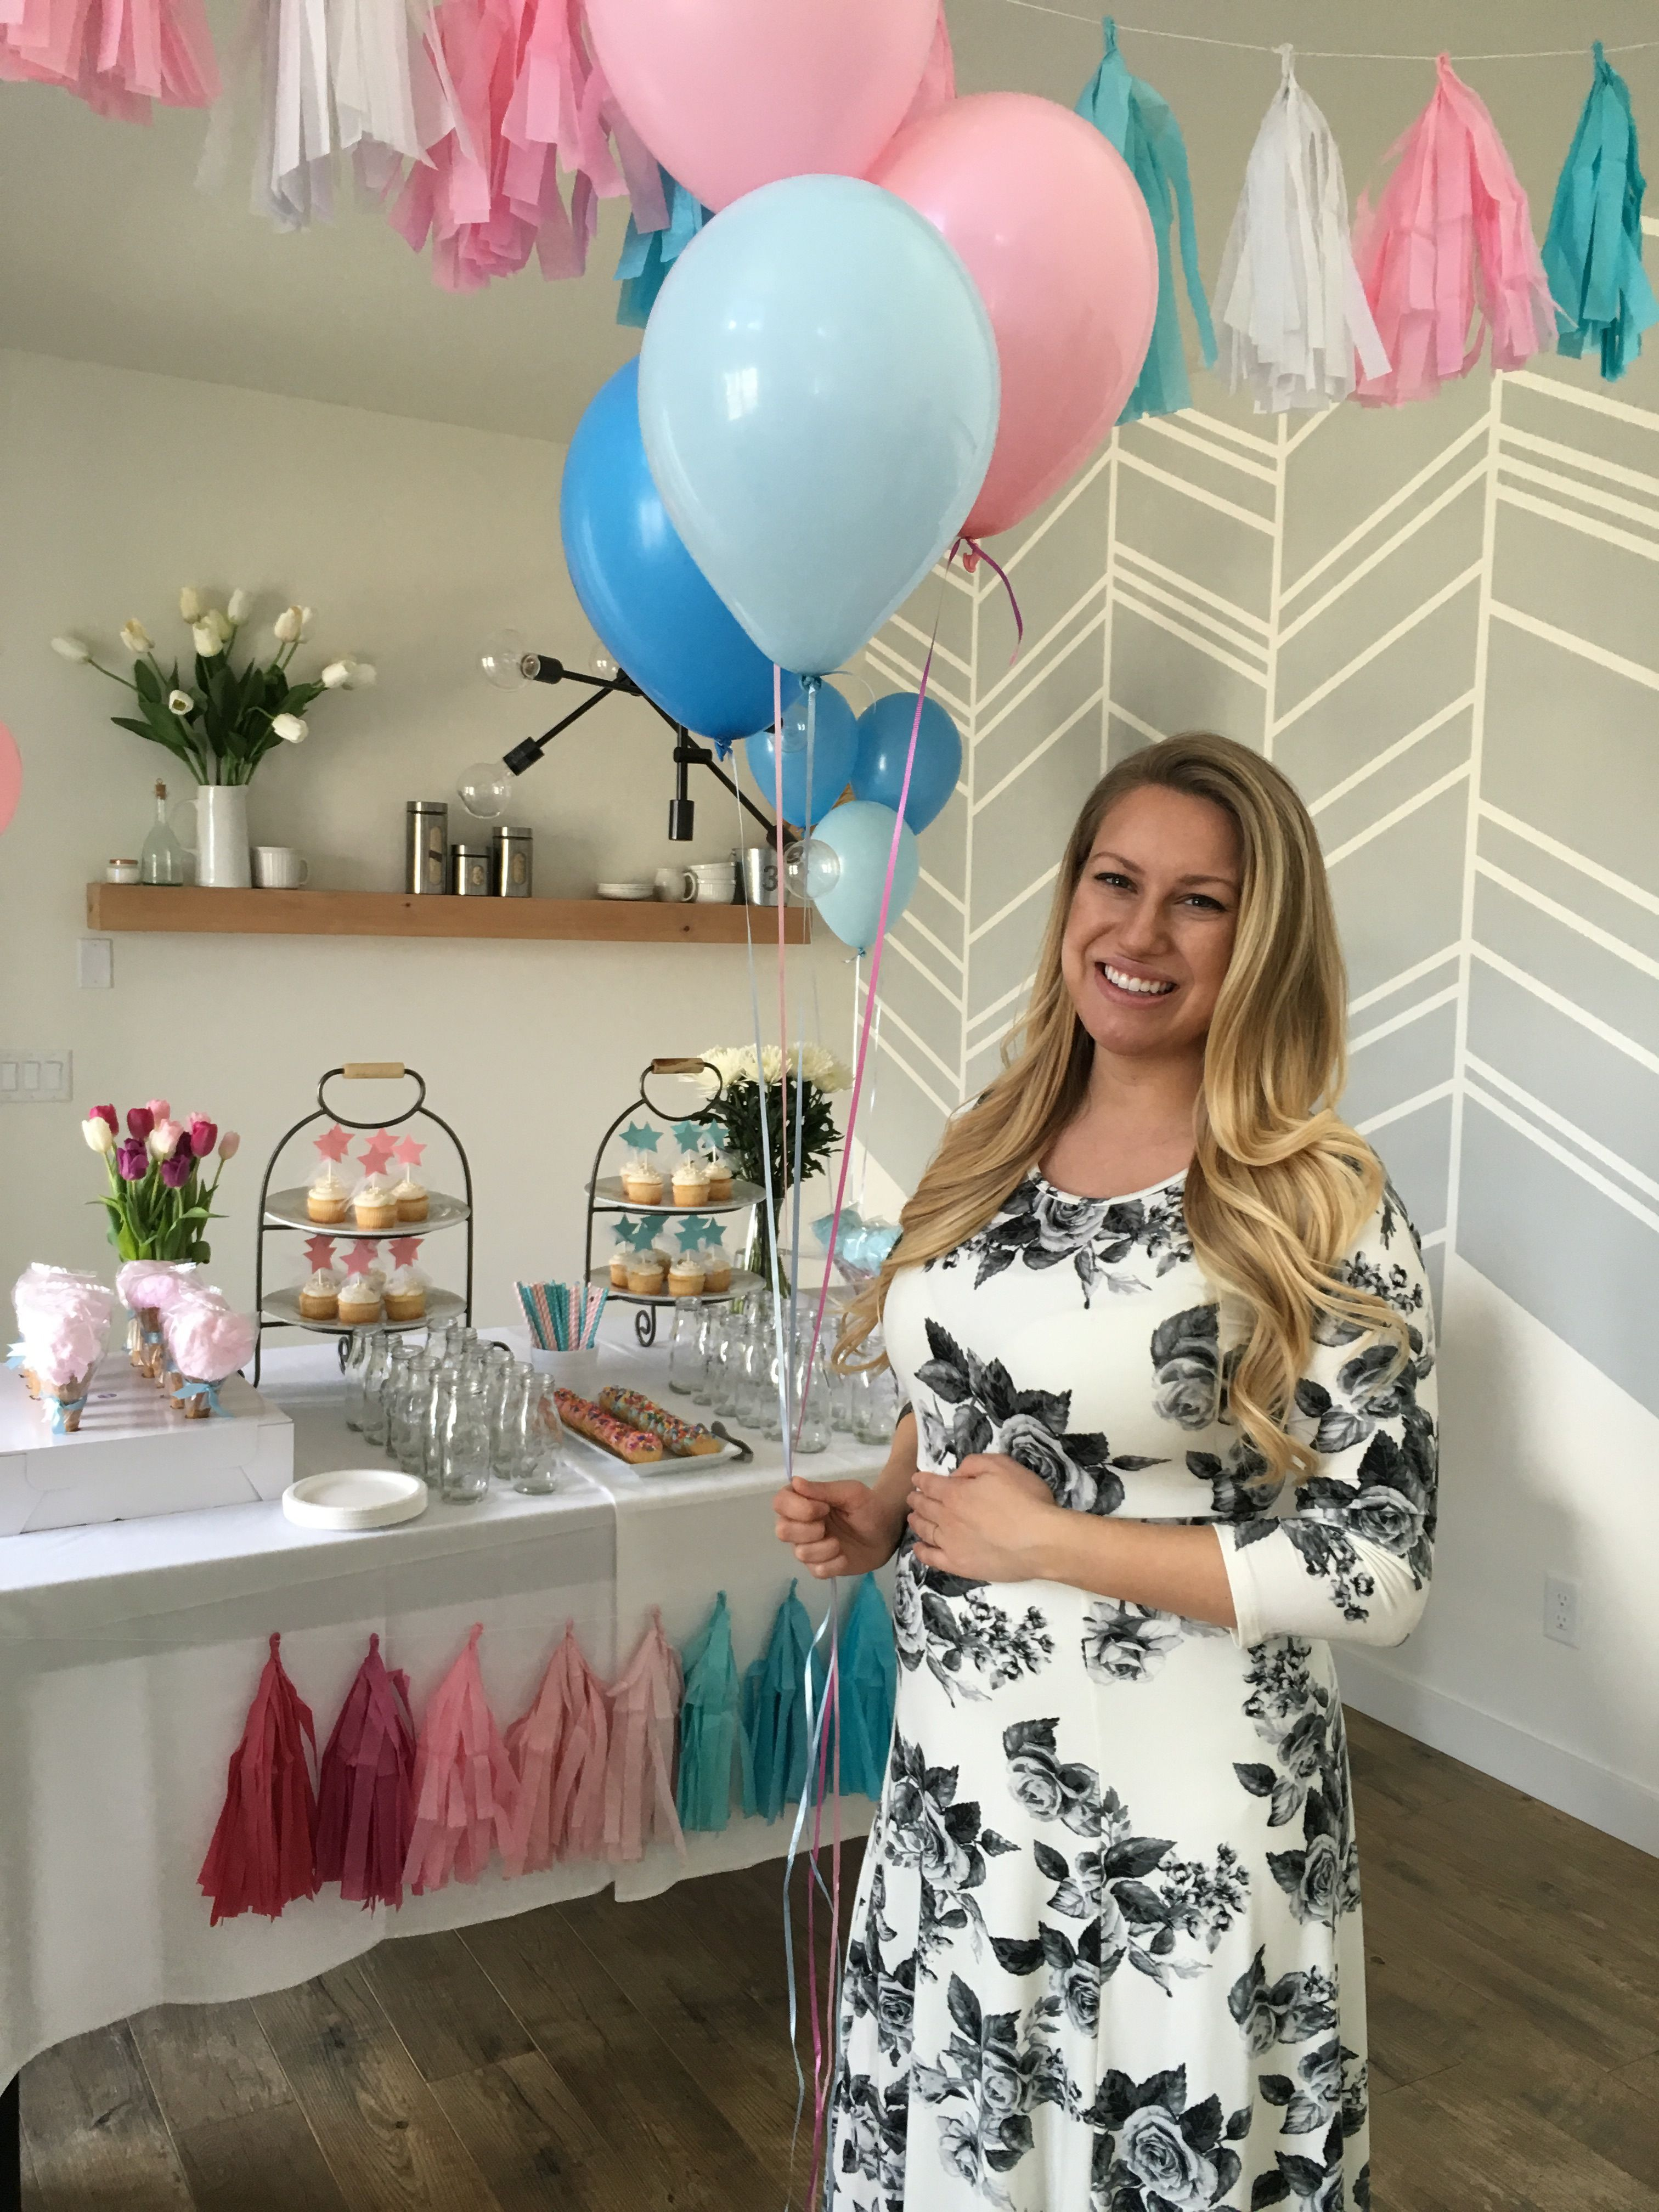 Pin by Ashley Talbot on Gender Reveal Party Pinterest